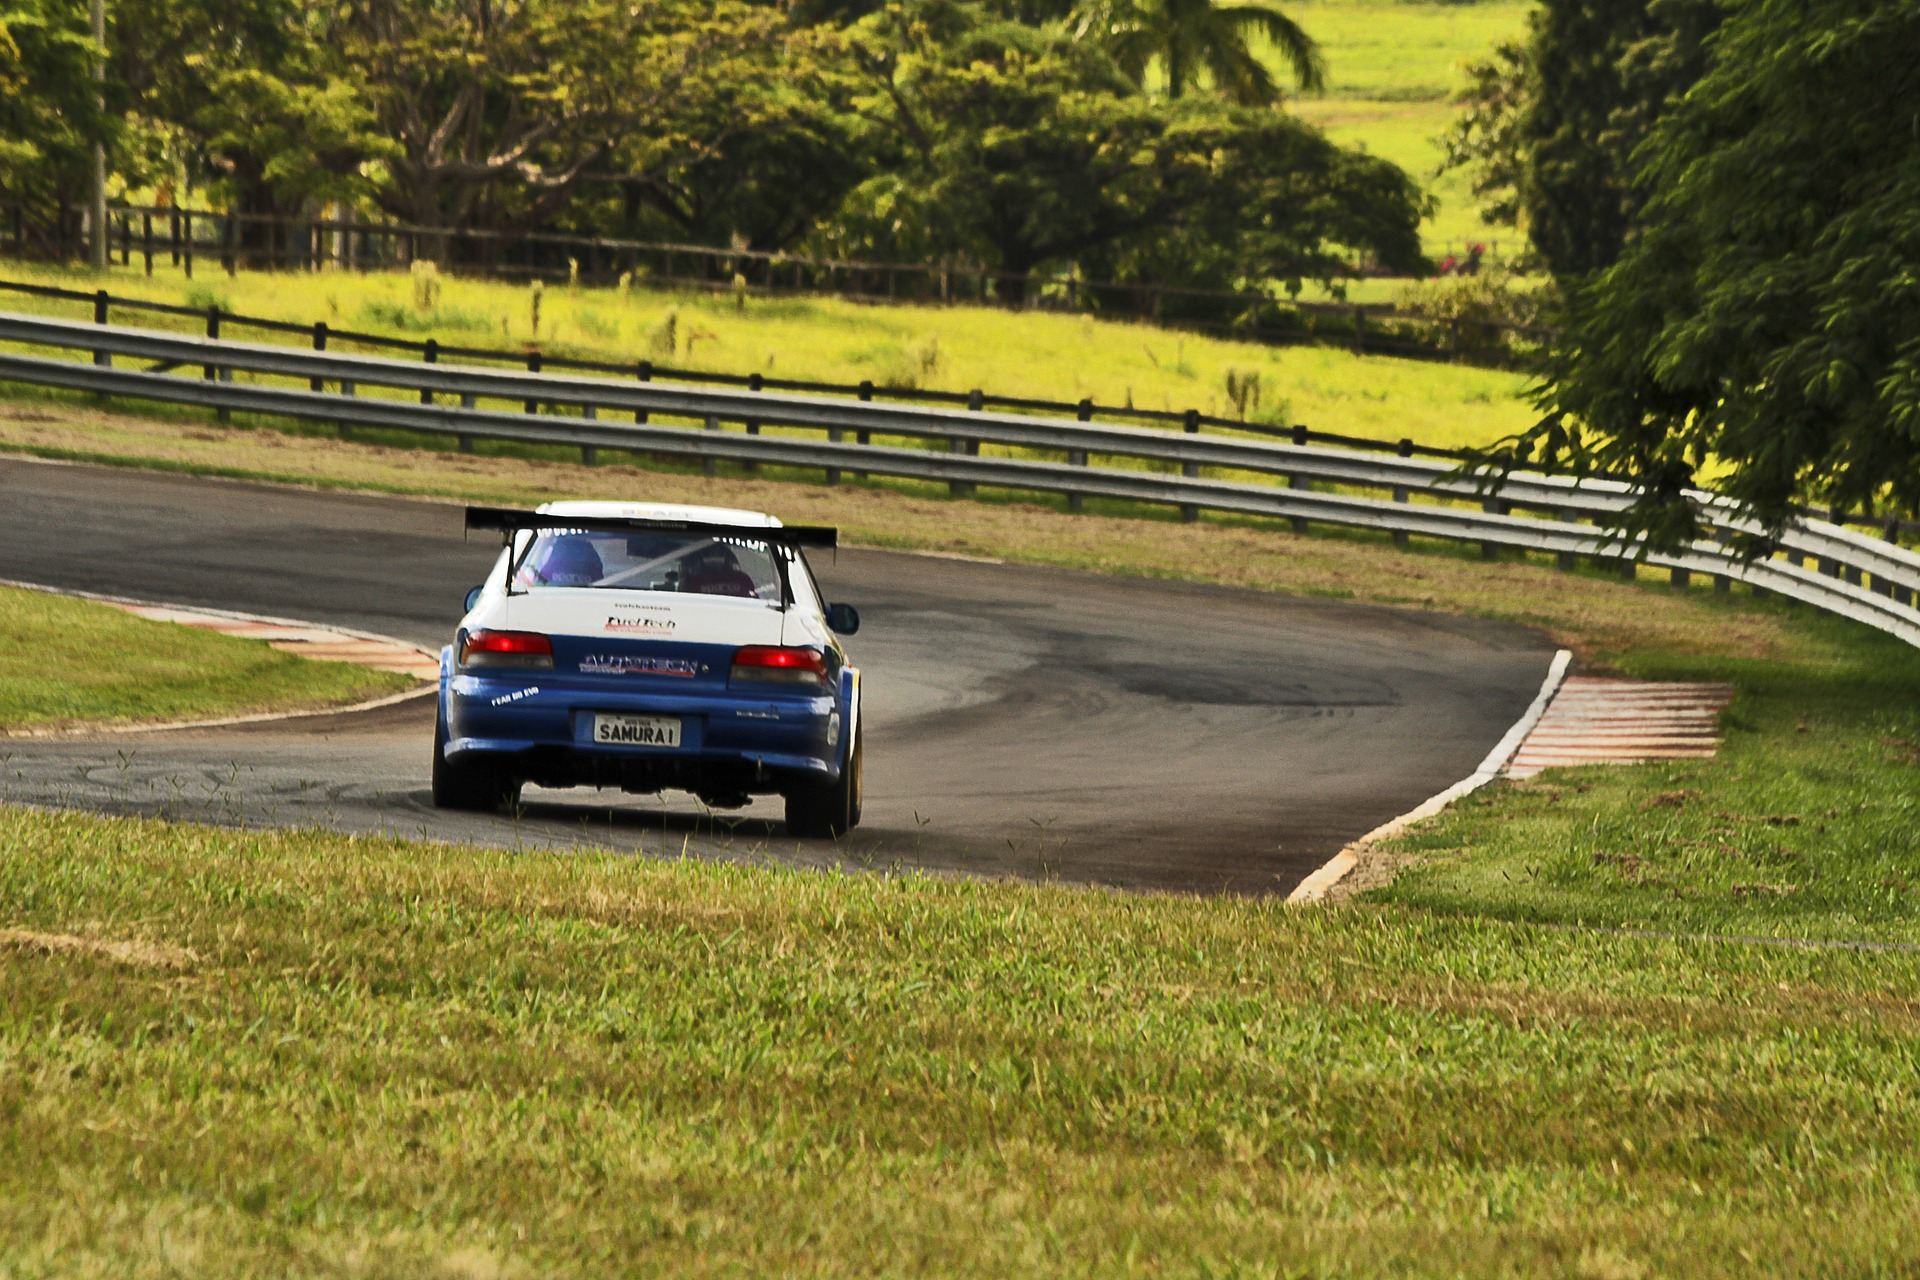 Track Days: Exciting fun for all the family